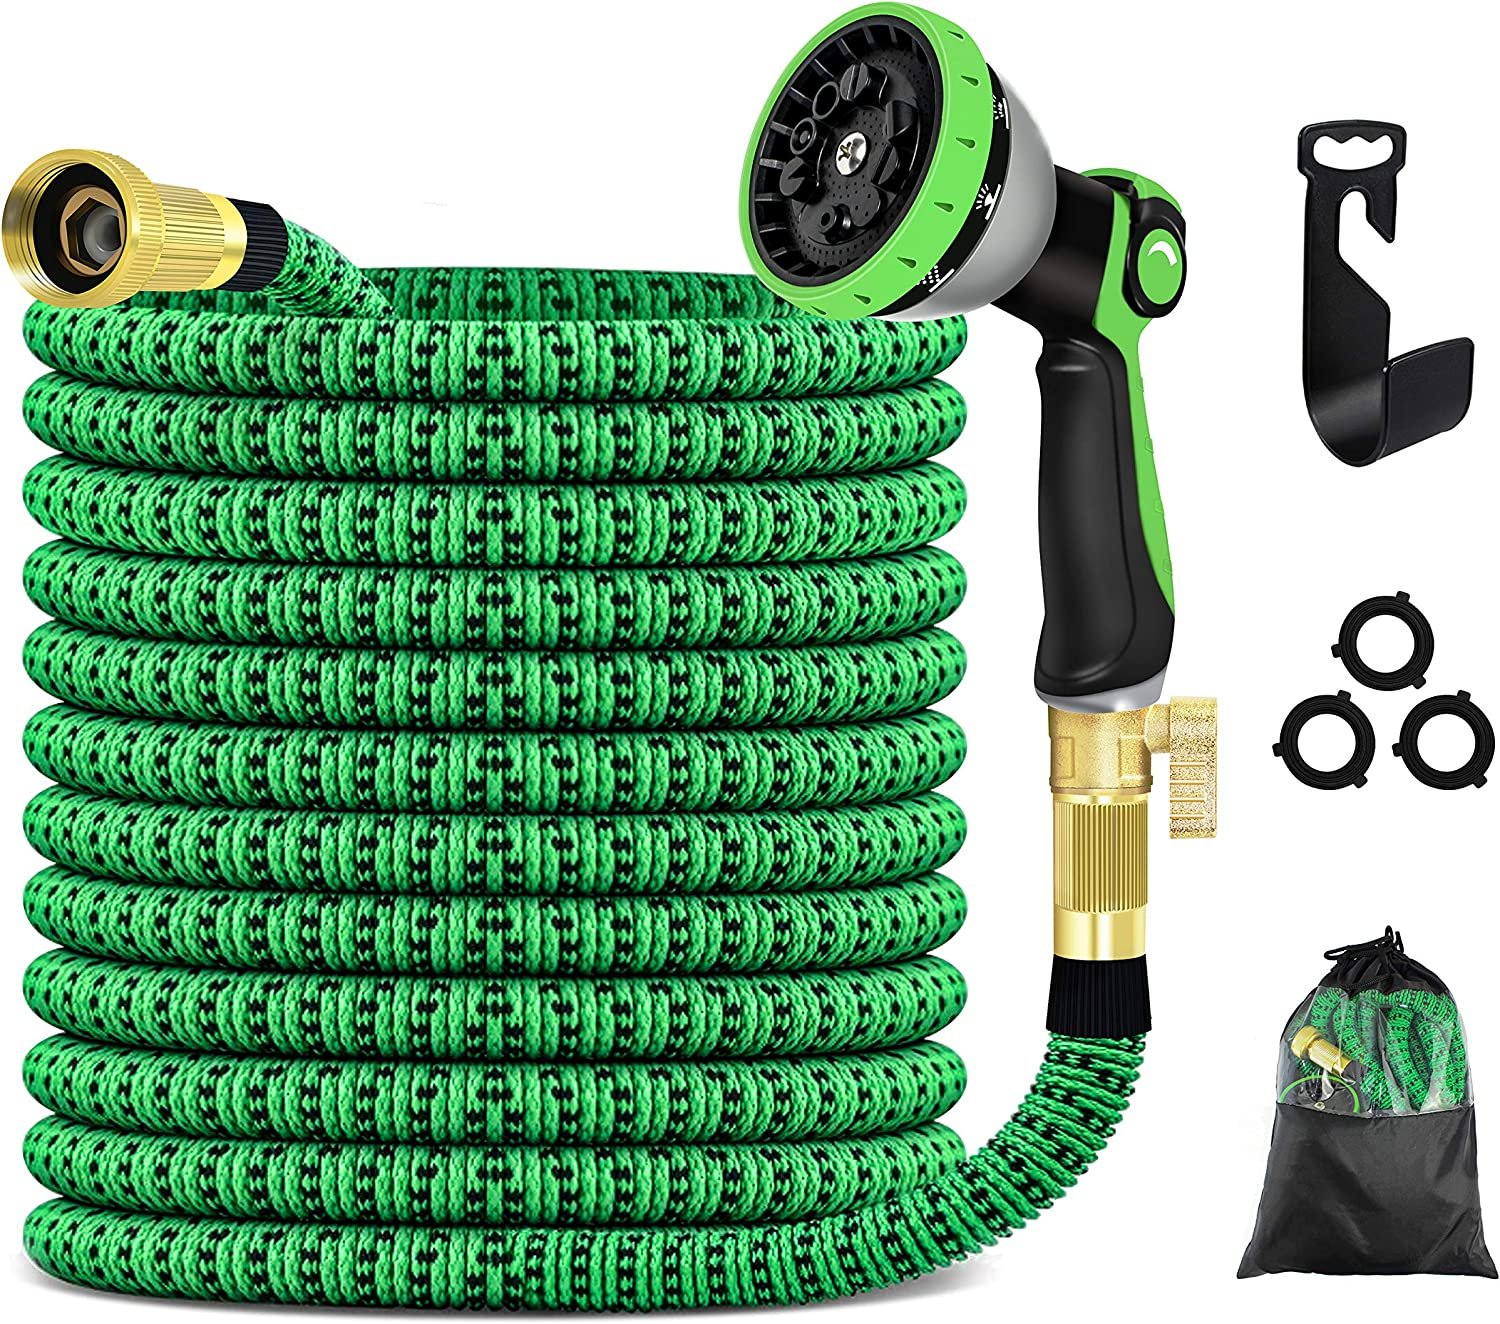 Keakam Expandable Garden Hose, 100FT Water Hose with 10 Functional Spray Nozzles, Strength 3750D Fabric 4-Layer Latex Core, Solid Brass Fittings, Flexible Leakproof Lightweight No Kink Hose (100FT)